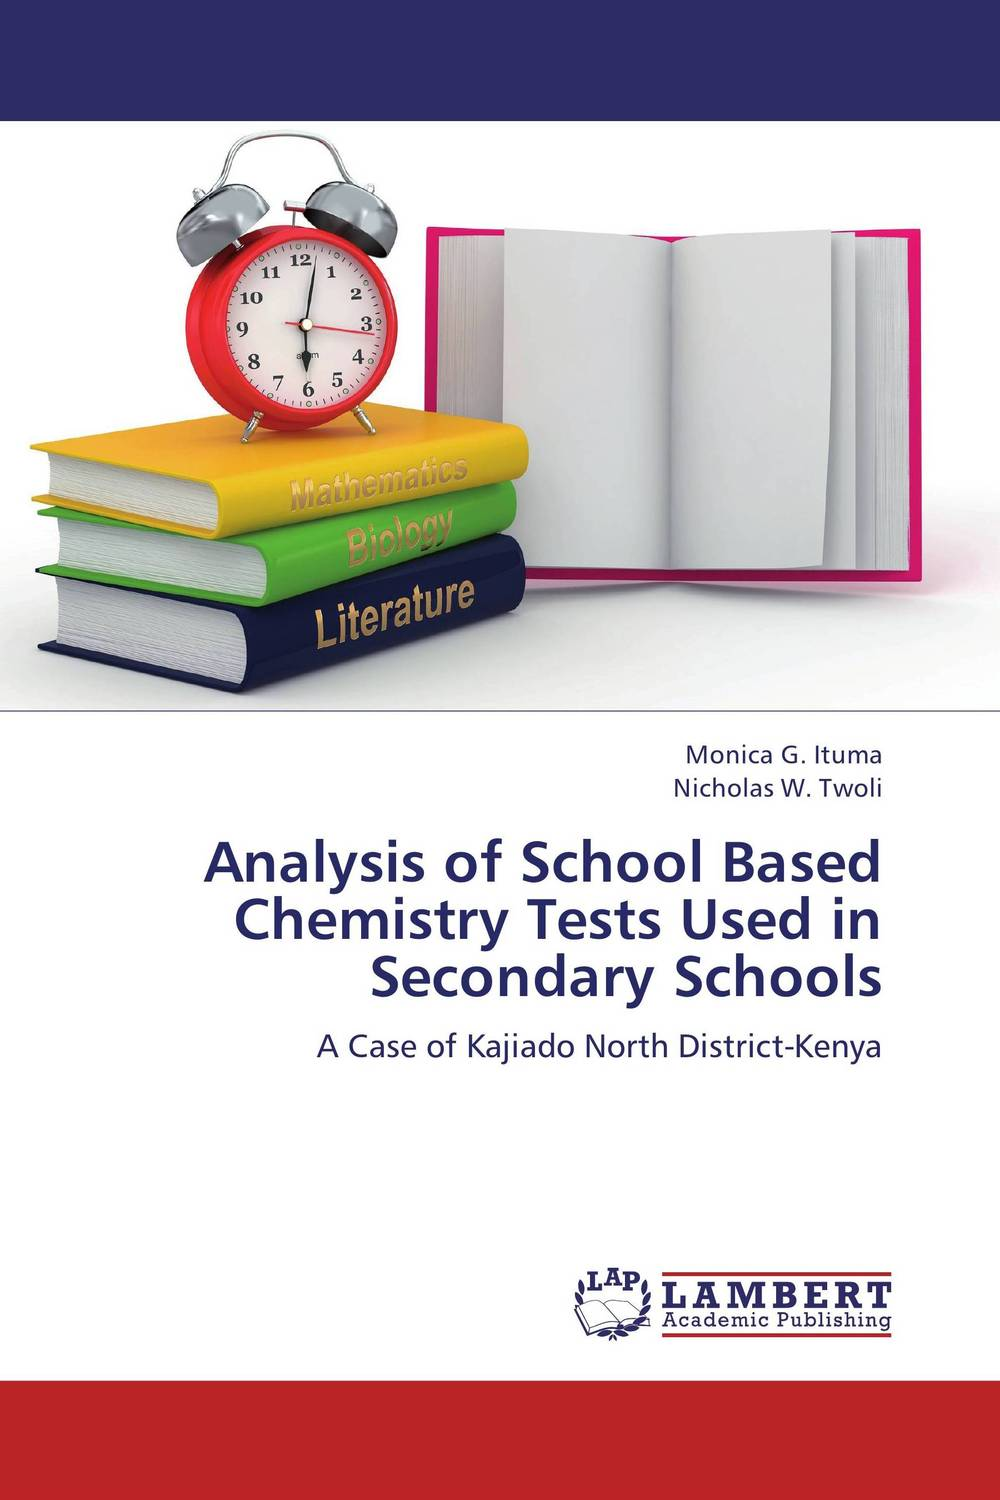 Analysis of School Based Chemistry Tests Used in Secondary Schools м н милеева chemistry in questions and tests учебное пособие